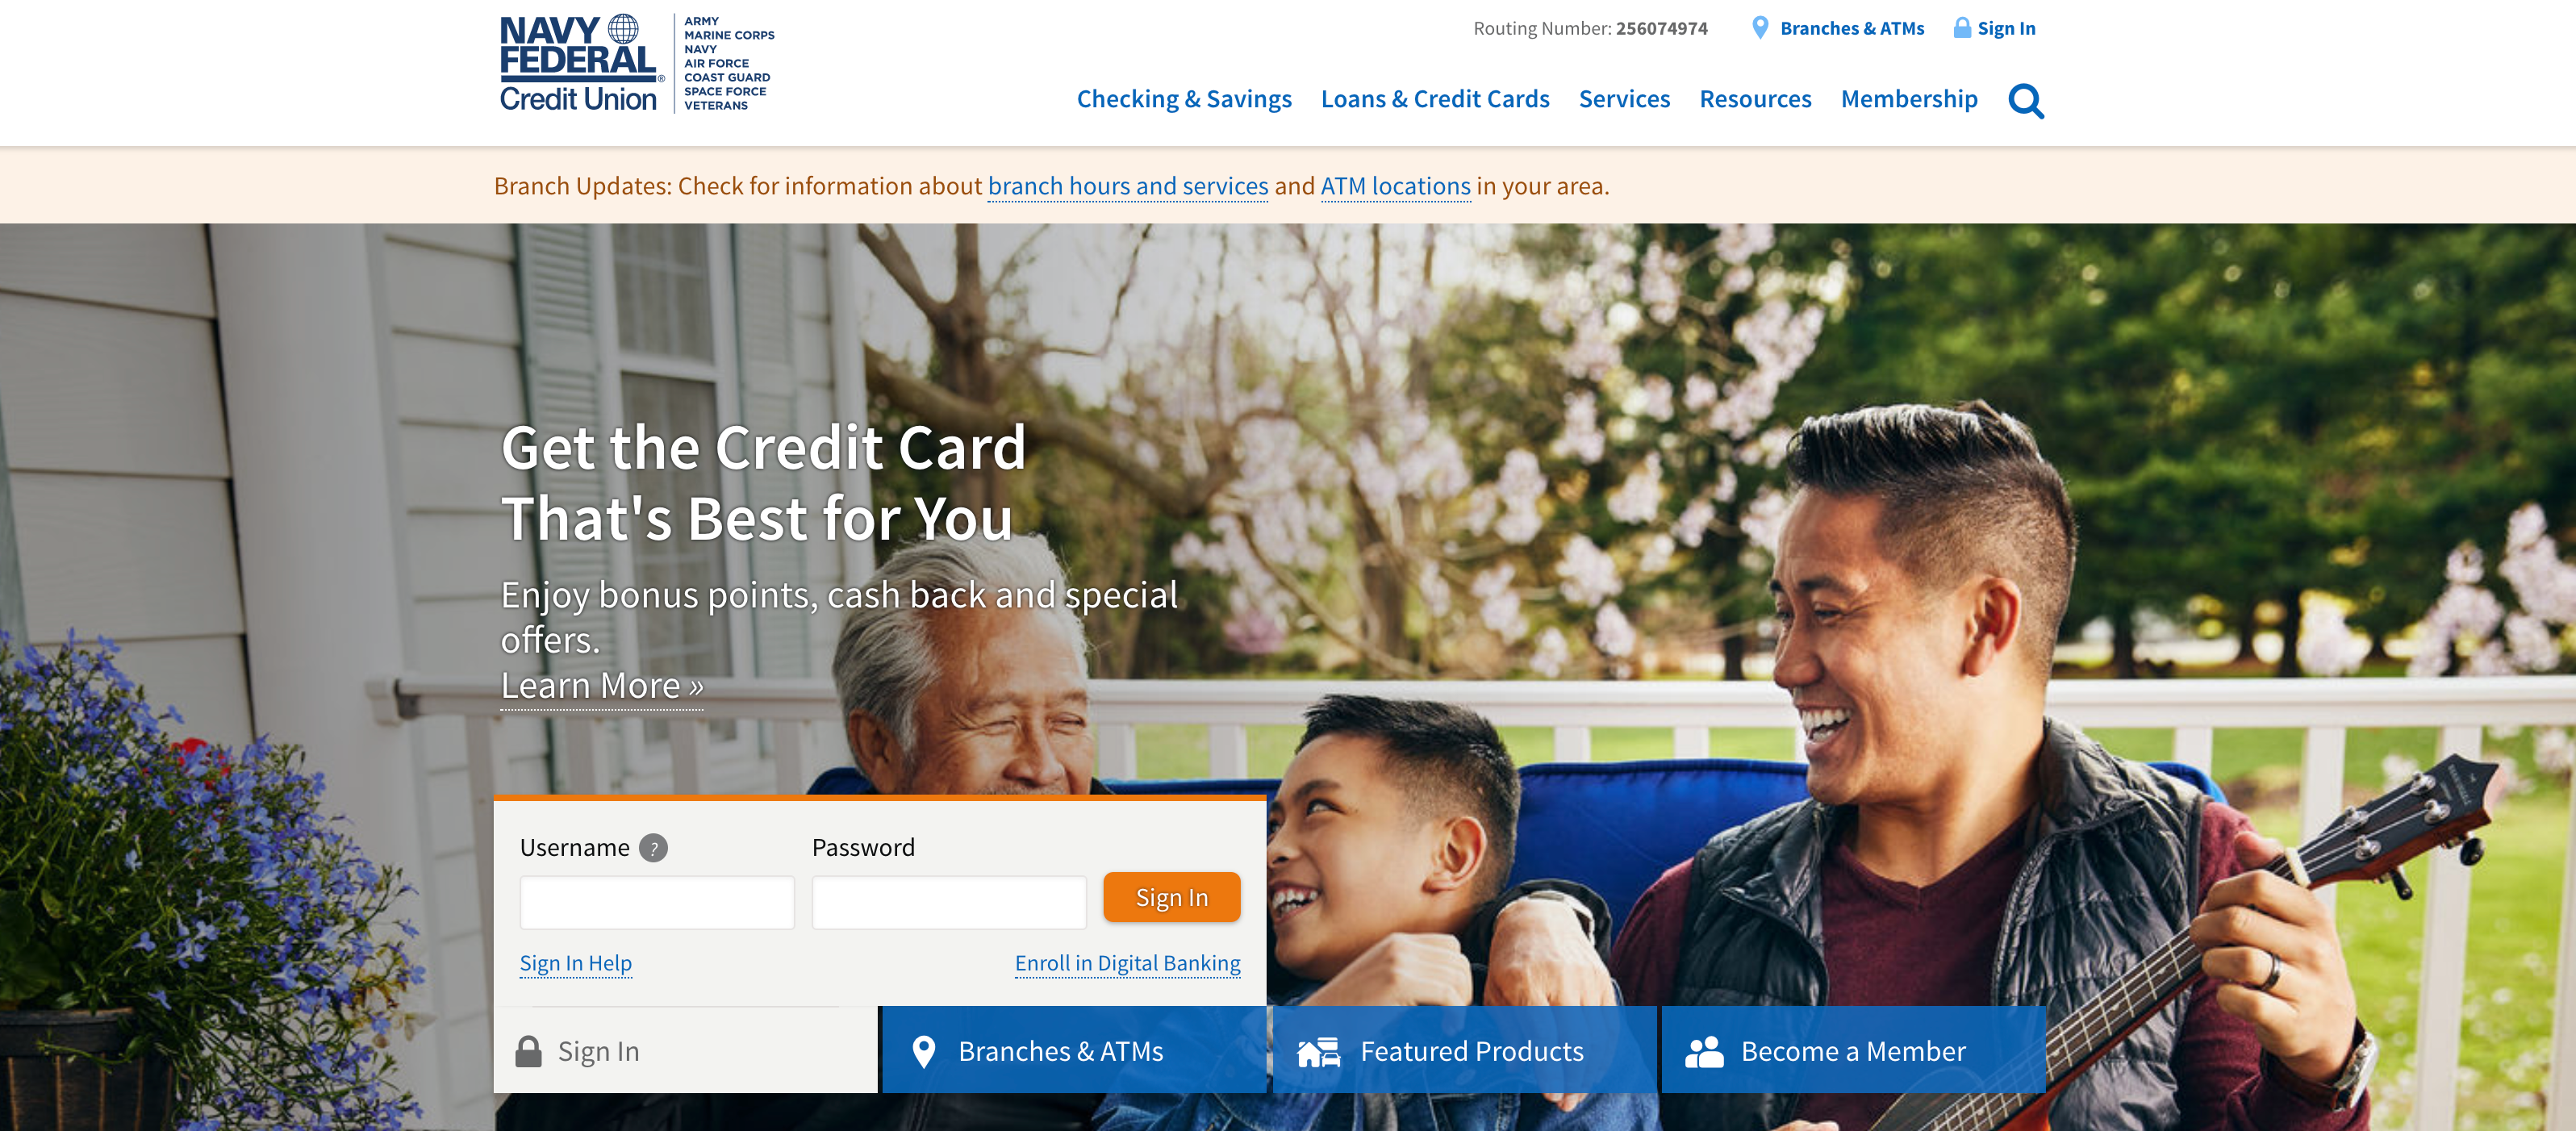 Navy Federal Credit Union (NFCU)